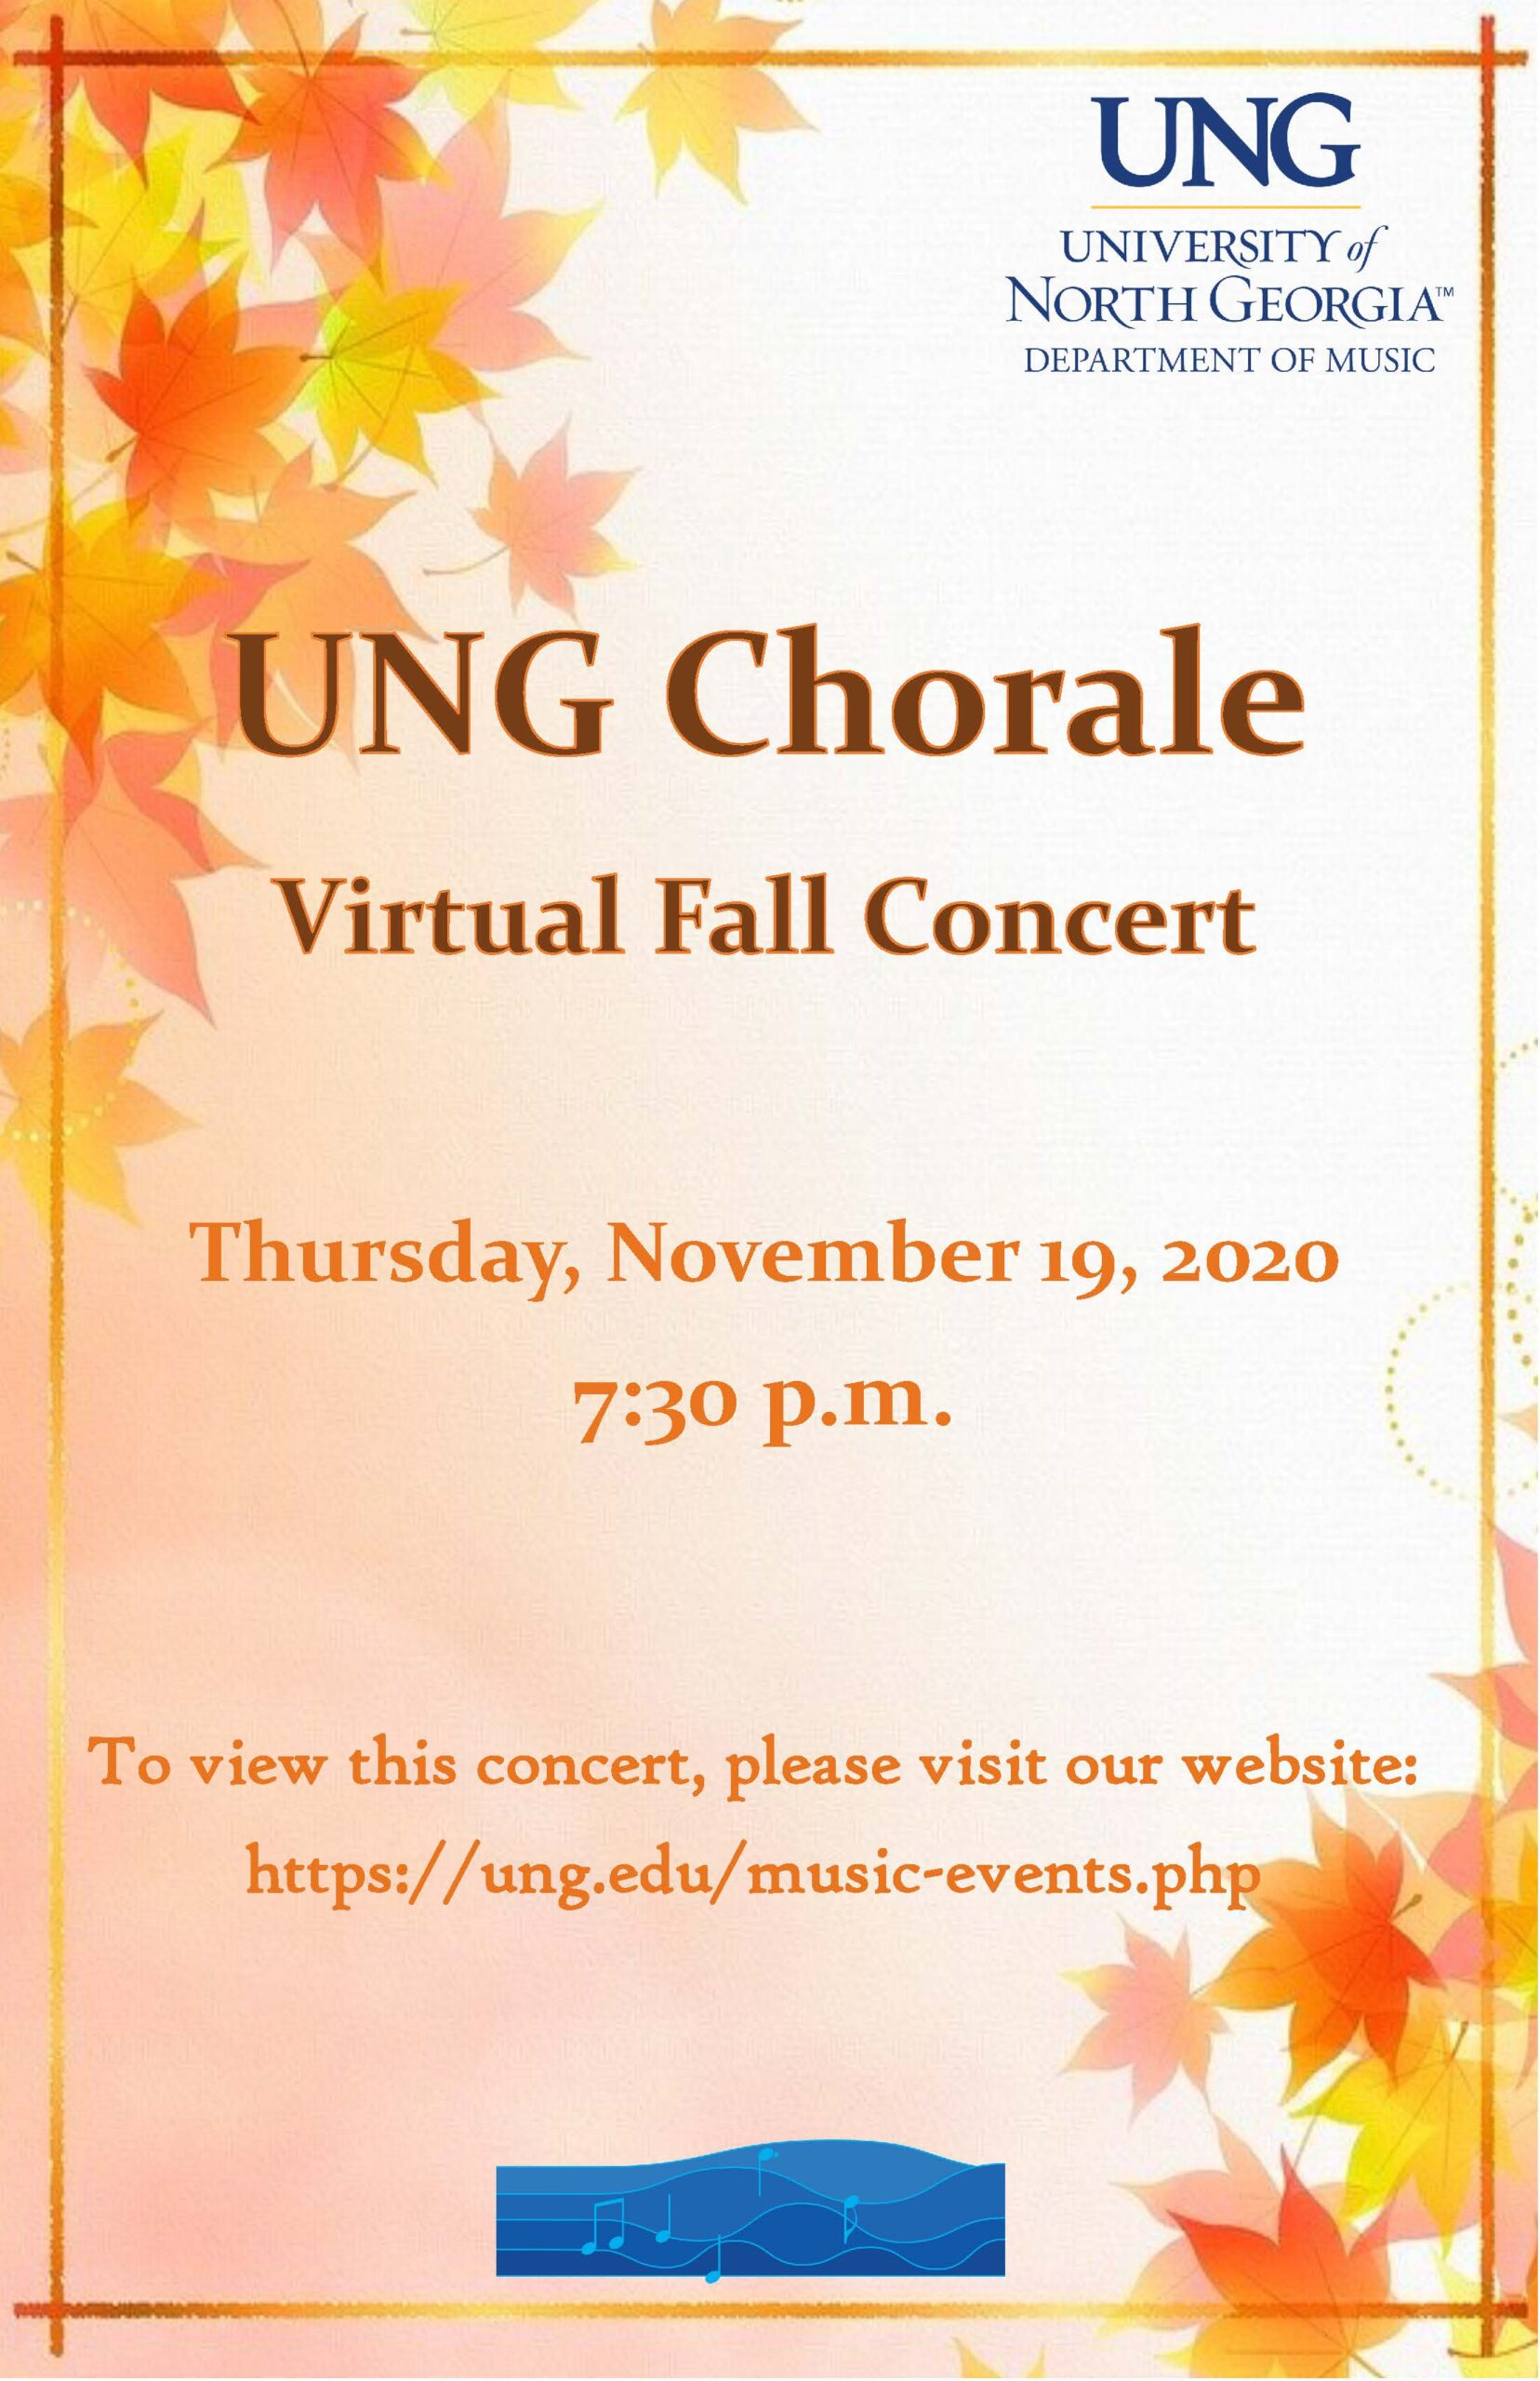 poster for event describing the event. UNG Chorale Virtual Fall Concert